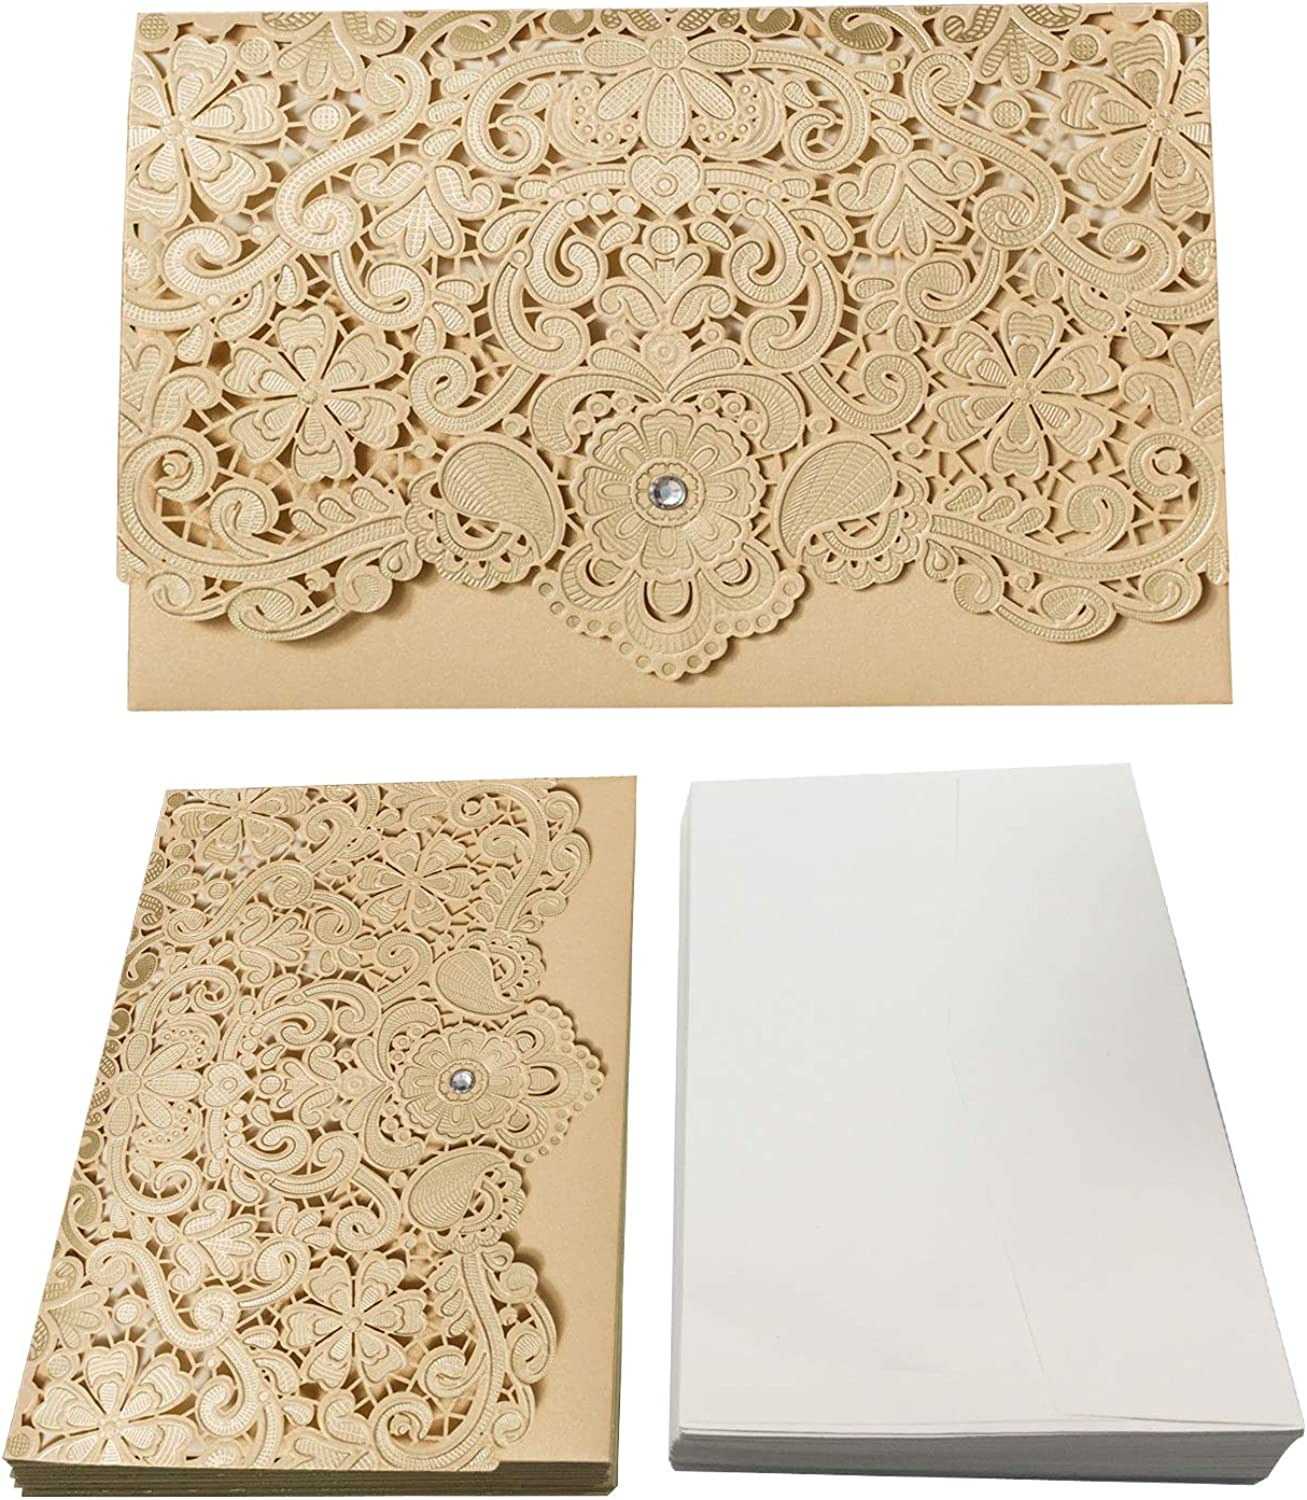 50PCS Paper Laser Cut Bronzing Wedding Baby Shower Invitation Cards with Butterfly Hollow Favors Invitation Cardstock for Engagement Birthday Graduation (YC042)